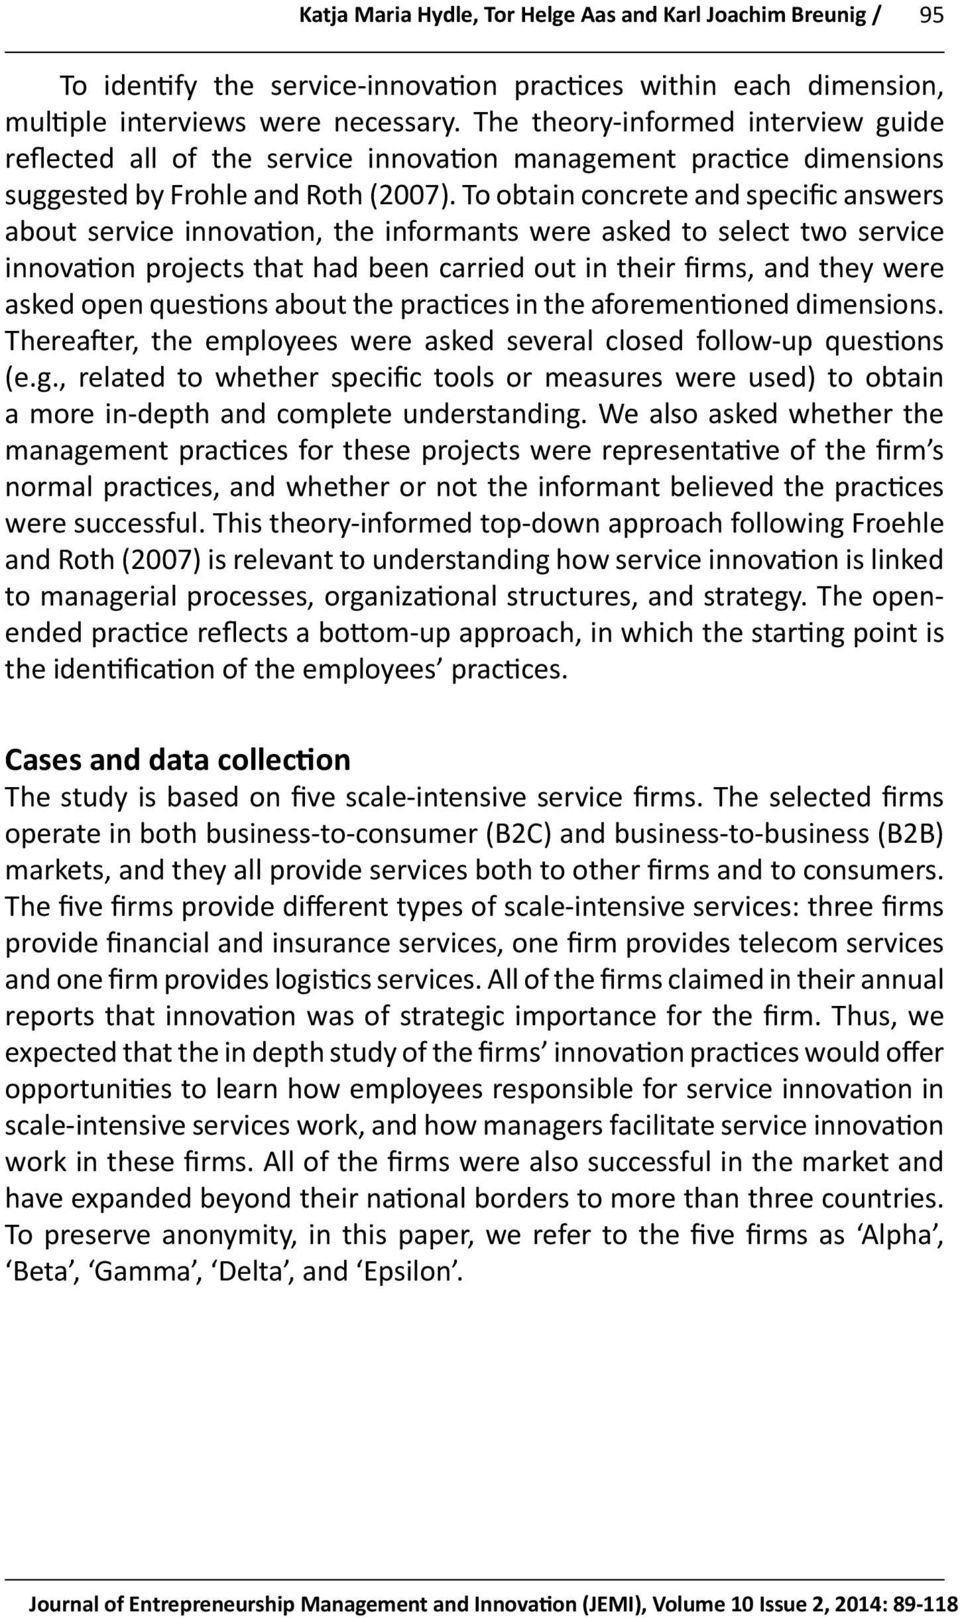 To obtain concrete and specific answers about service innovation, the informants were asked to select two service innovation projects that had been carried out in their firms, and they were asked